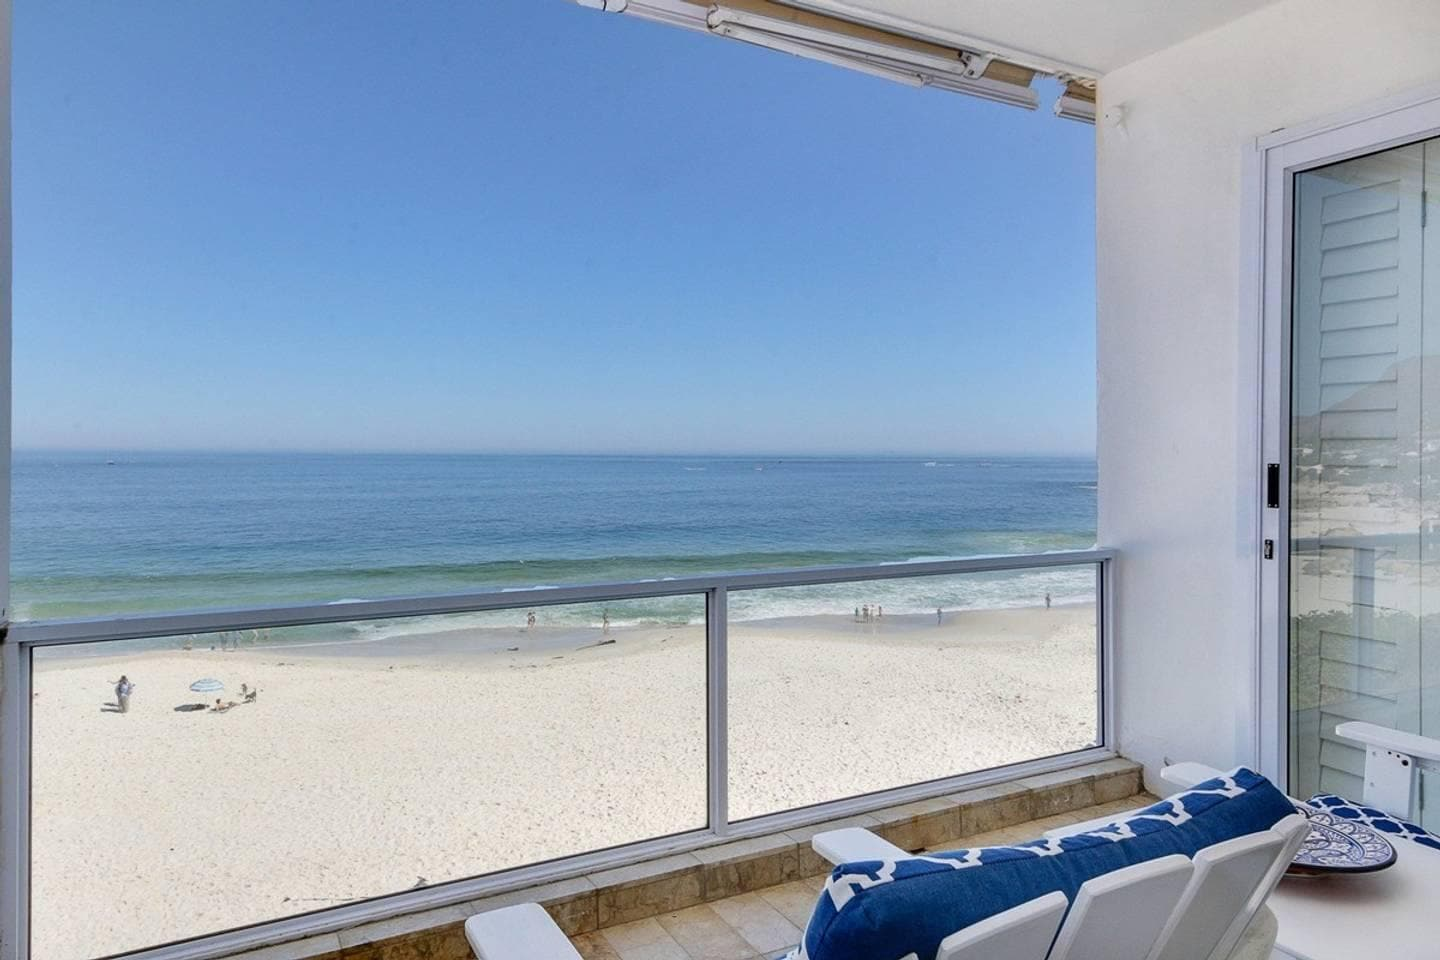 Property Image 2 - Cozy Beachfront Apartment in Clifton with Superb Ocean Views